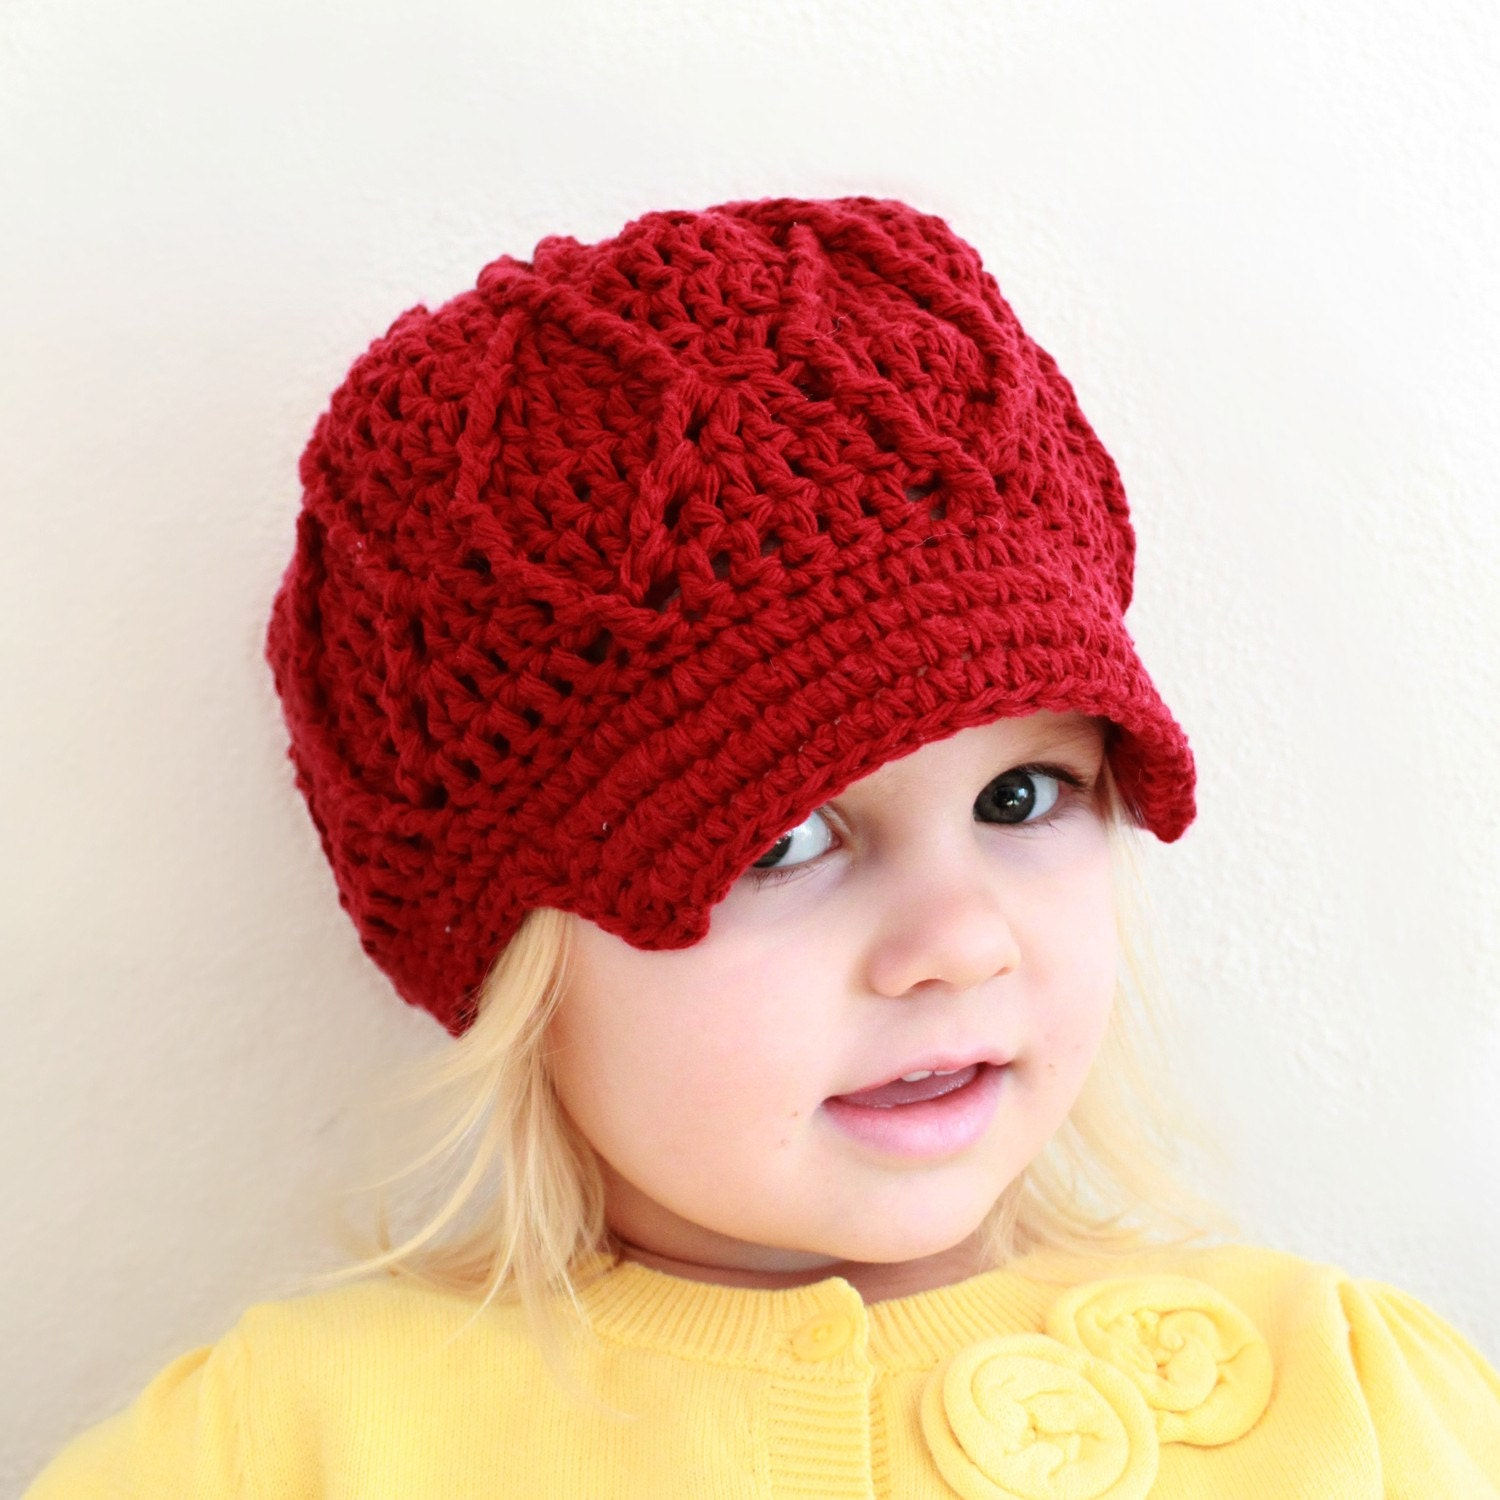 Free Crochet Pattern Toddler Newsboy Cap : Instant Download Crochet Pattern Maggie Newsboy Hat